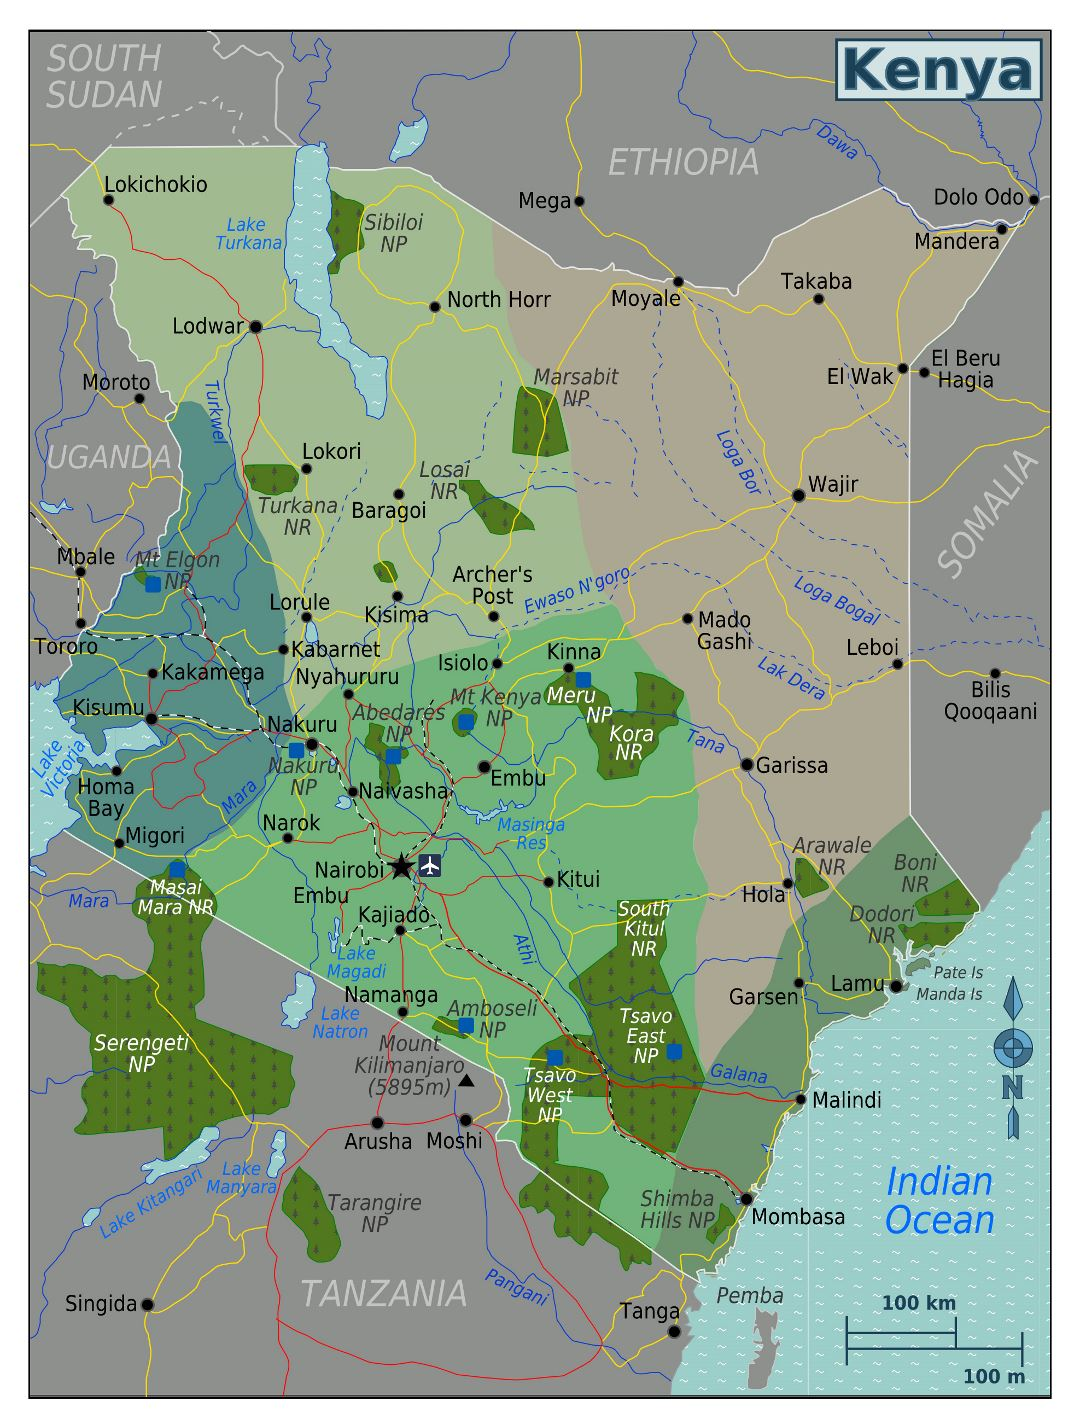 Large regions map of Kenya